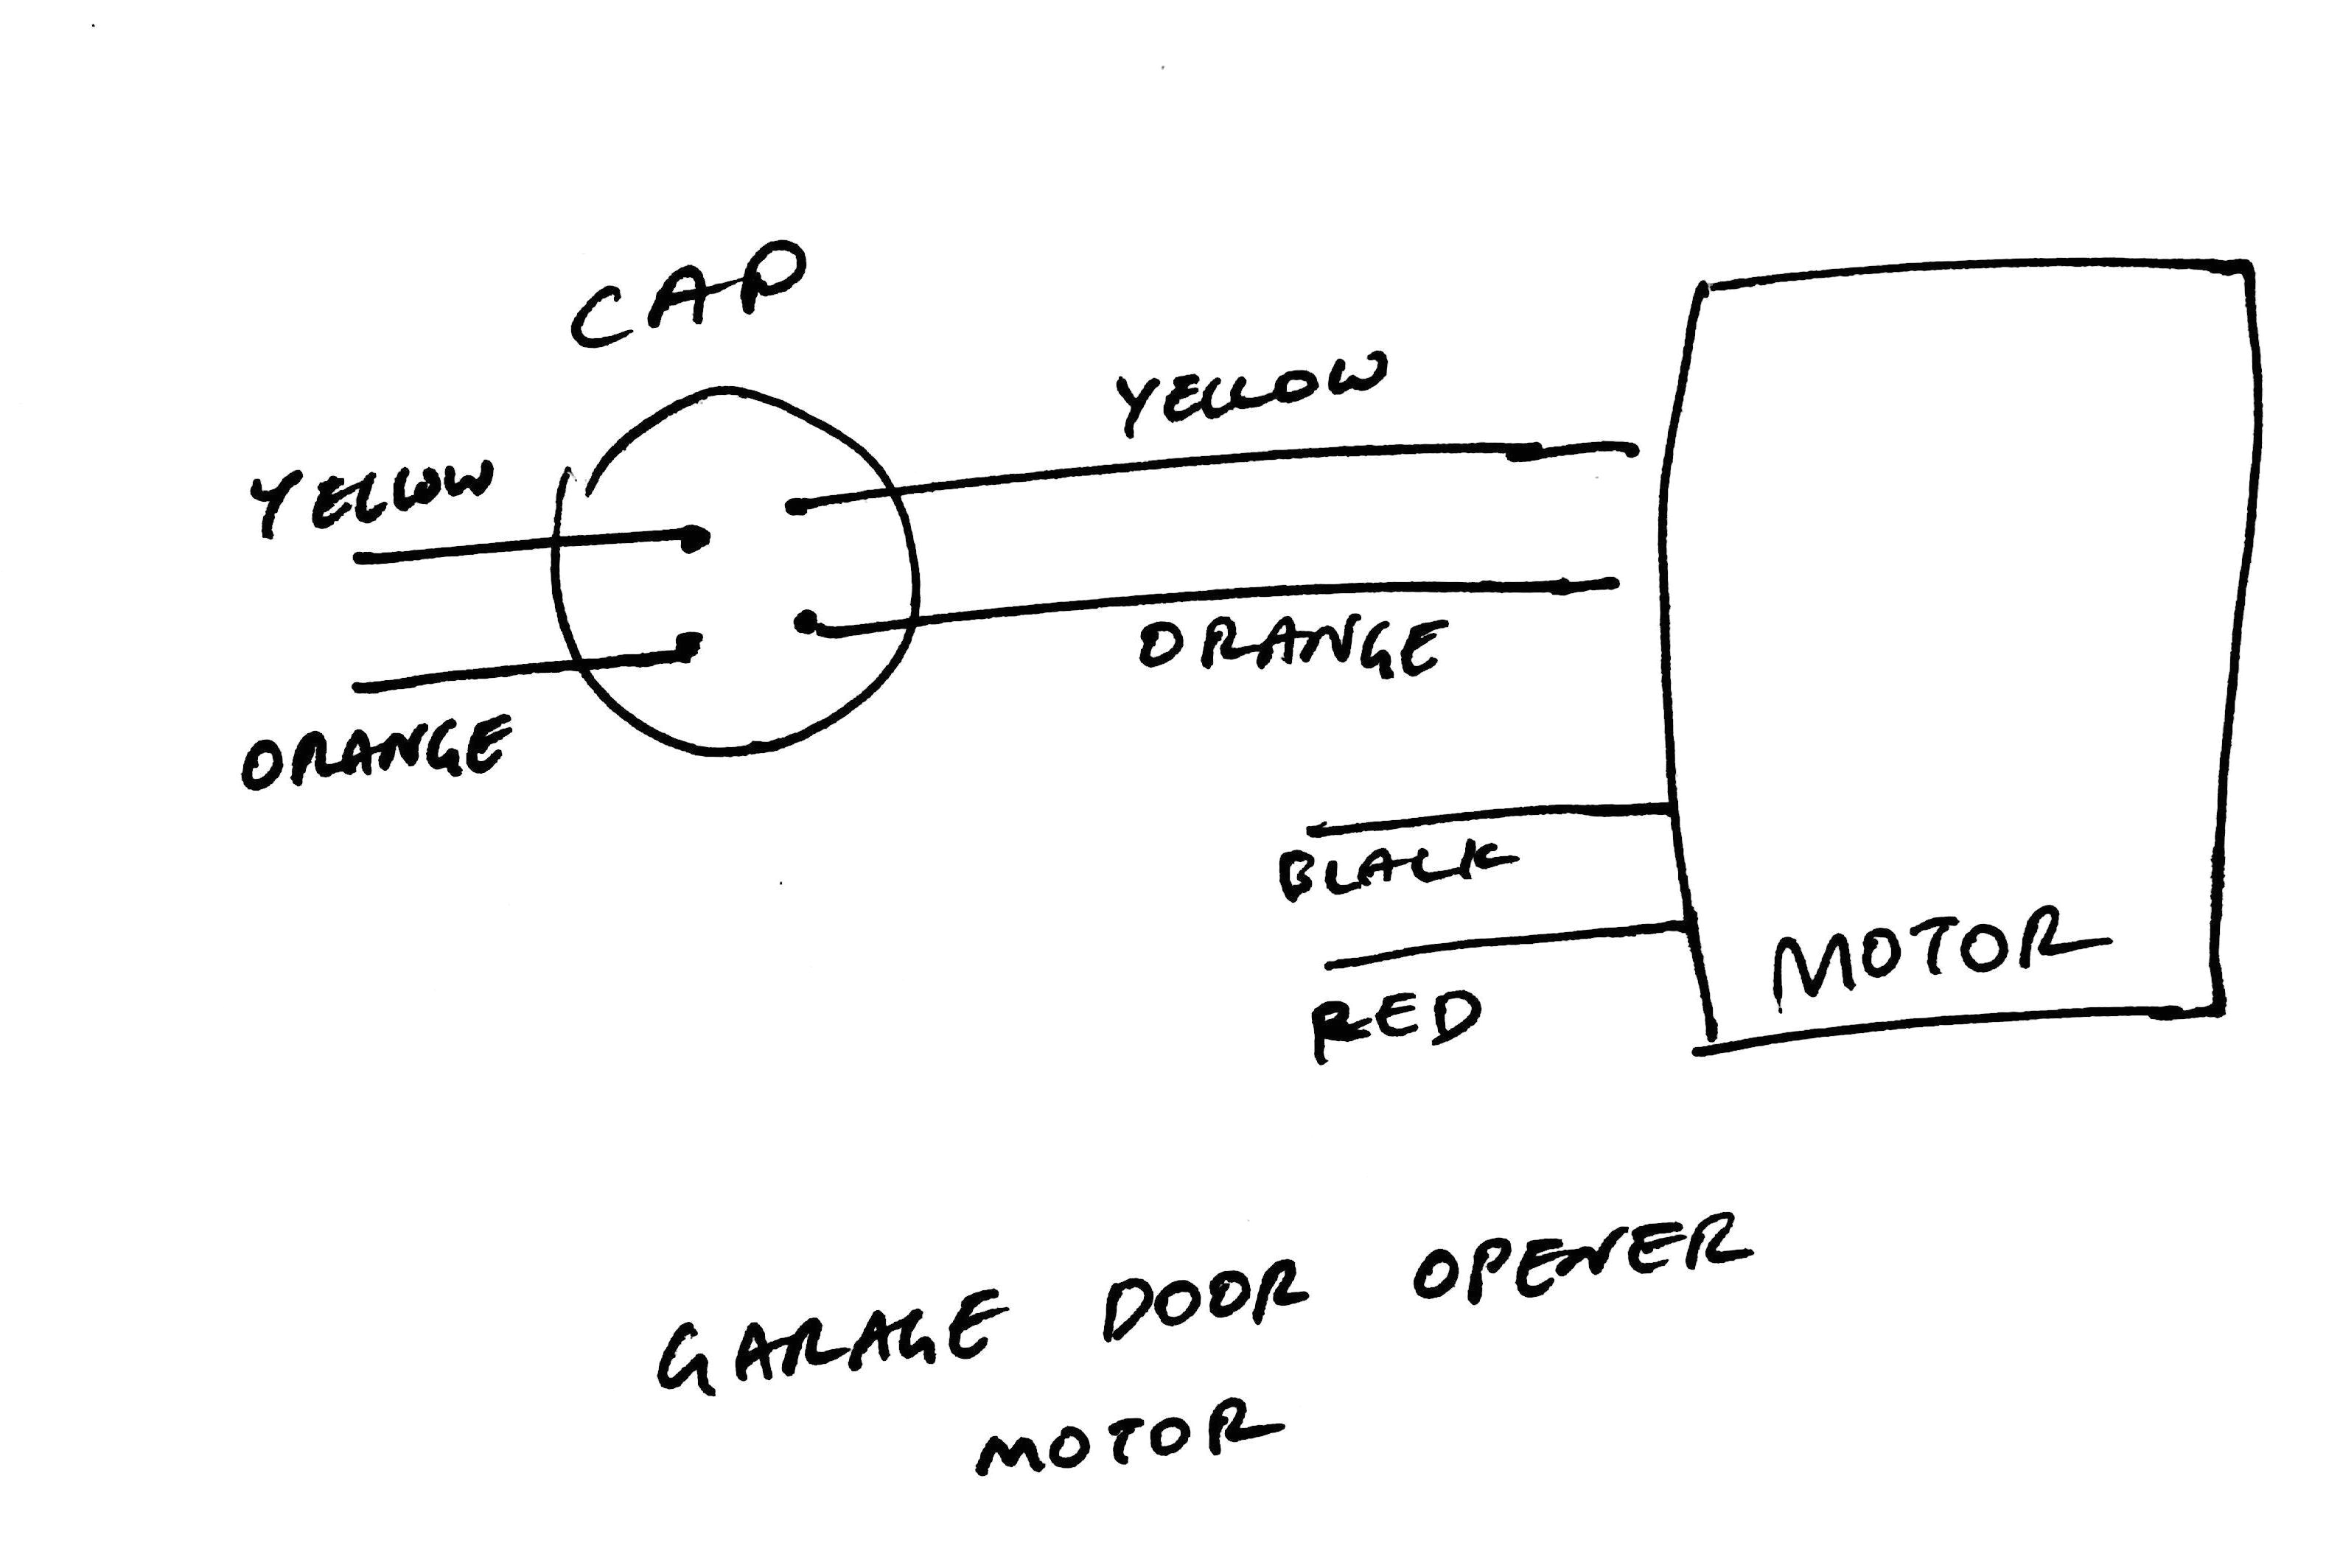 motor wiring diagram 4 wire wiring diagram fascinating dc motor wiring diagram 4 wire